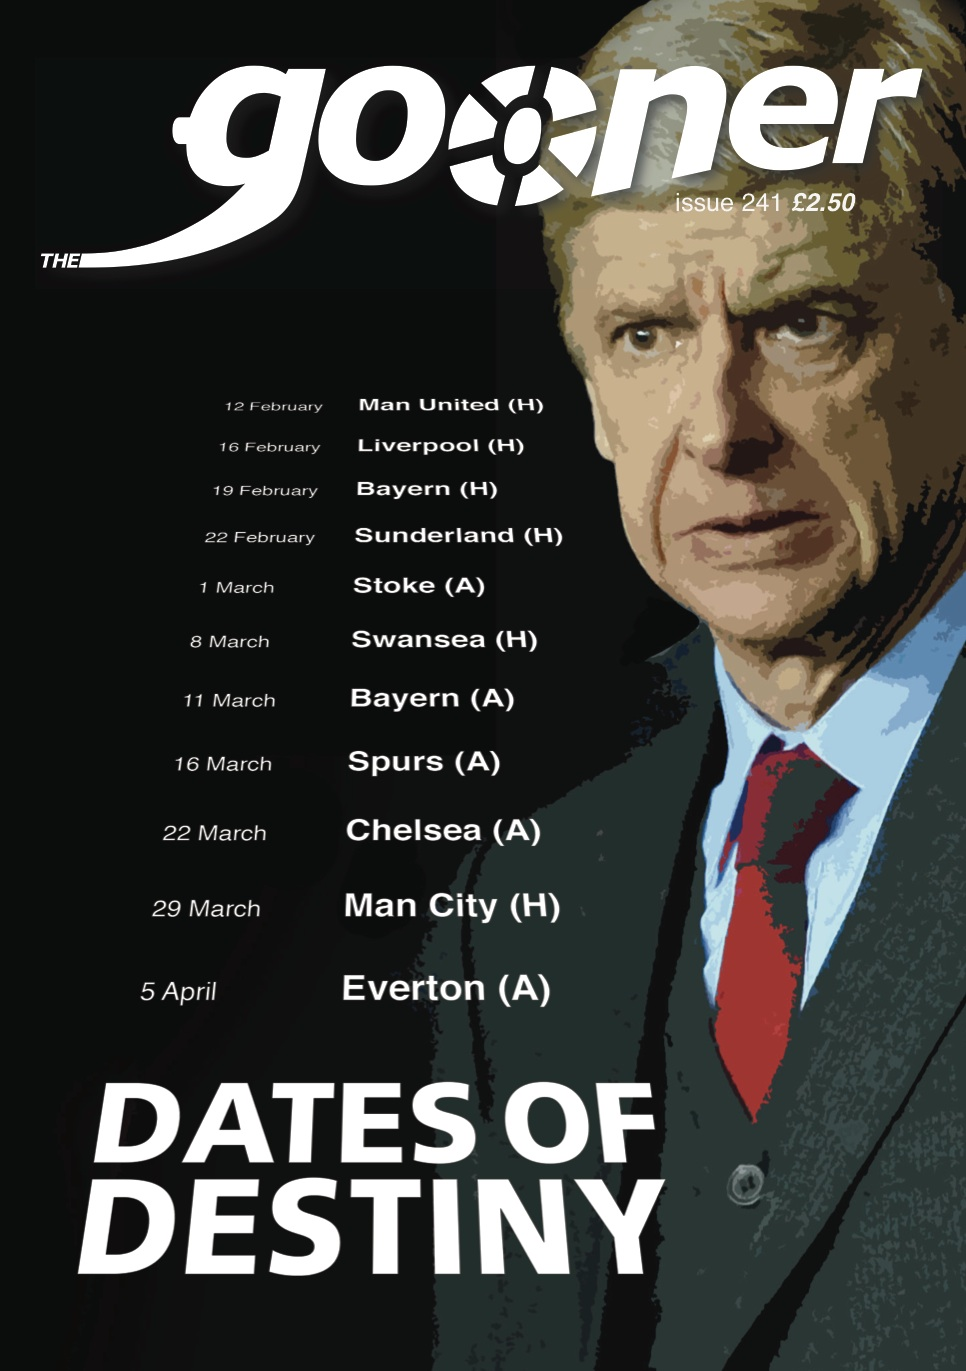 The Gooner - Issue 241